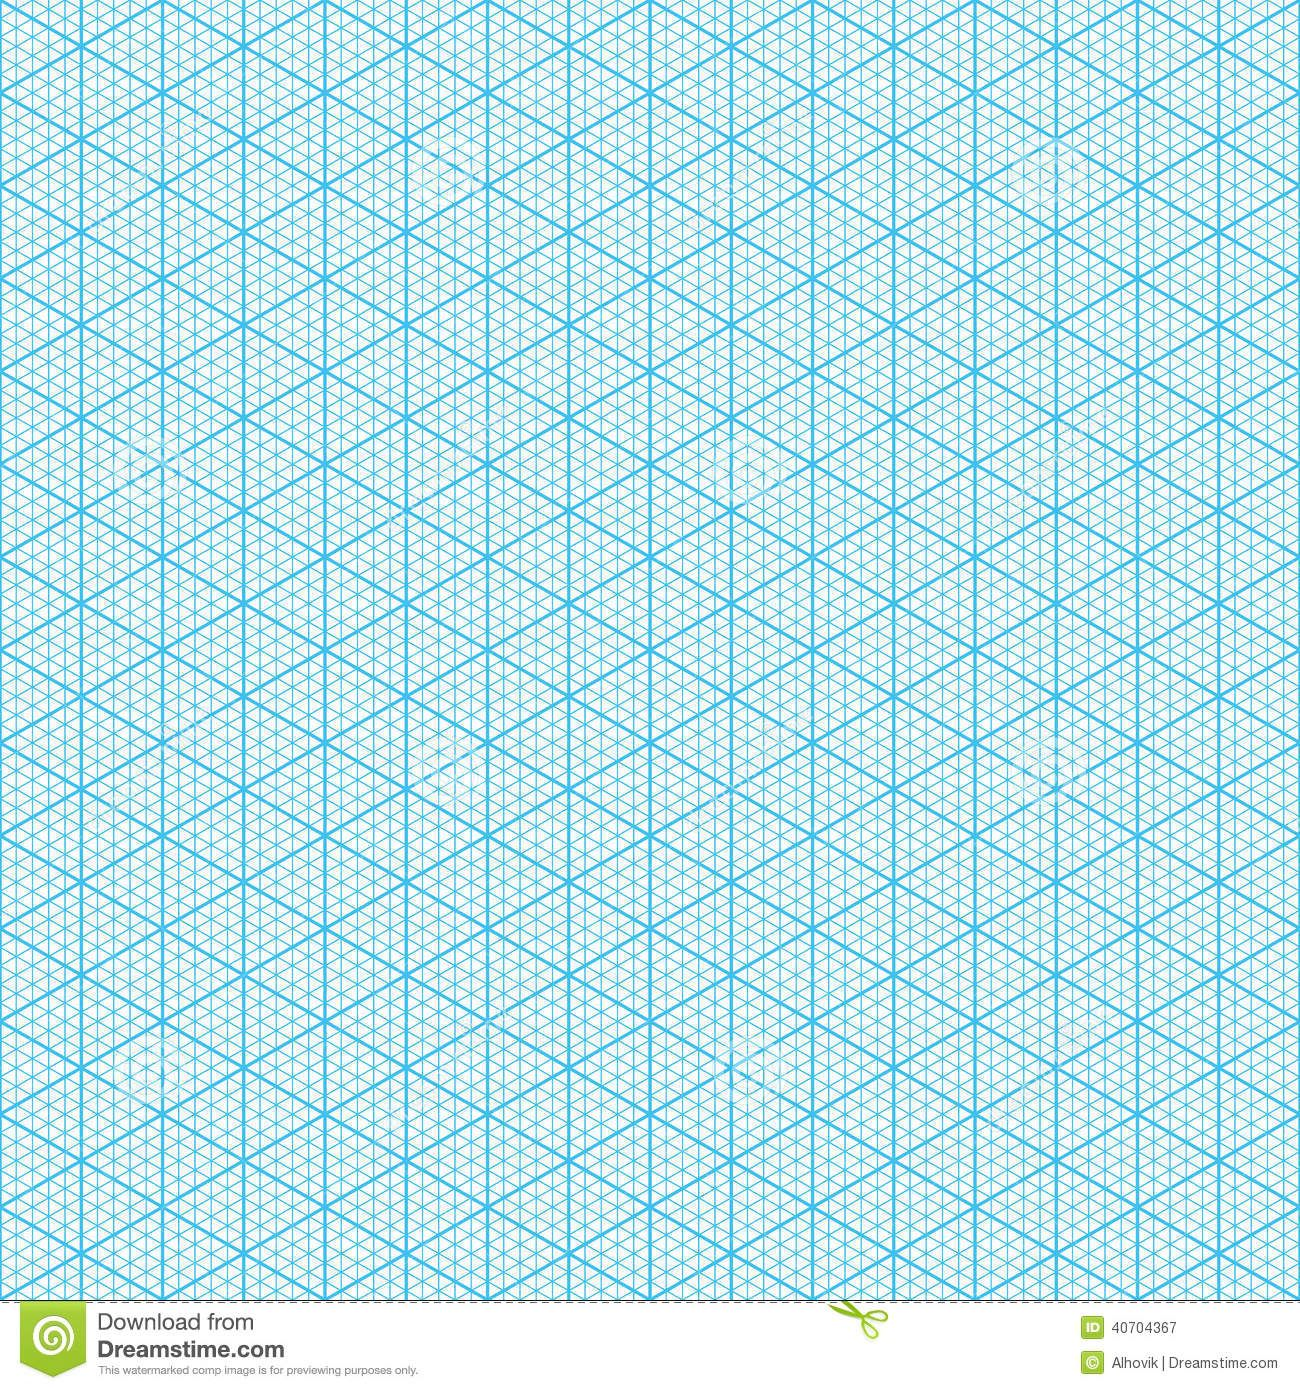 Isometric Graph Paper Seamless Illustration 40704367 1,300×1,390